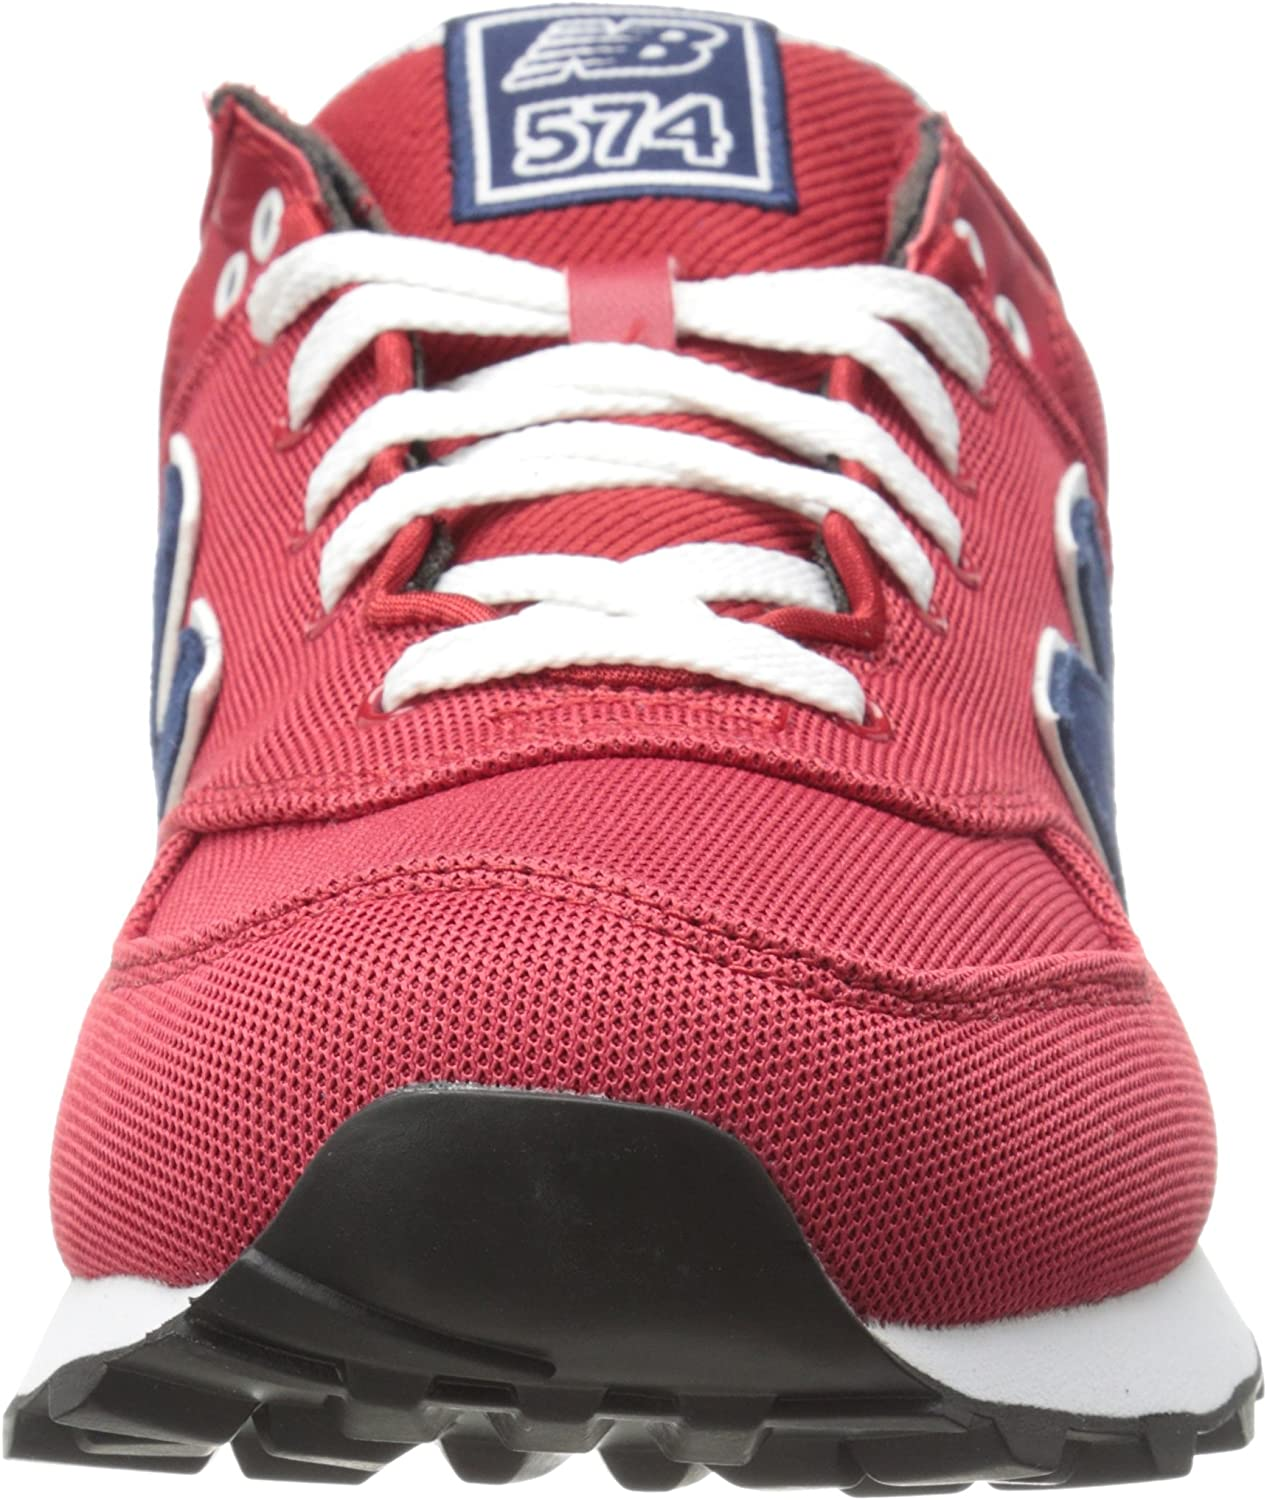 New Balance ml574por Pique Polo Pack rojo, Rojo (Red with Navy ...